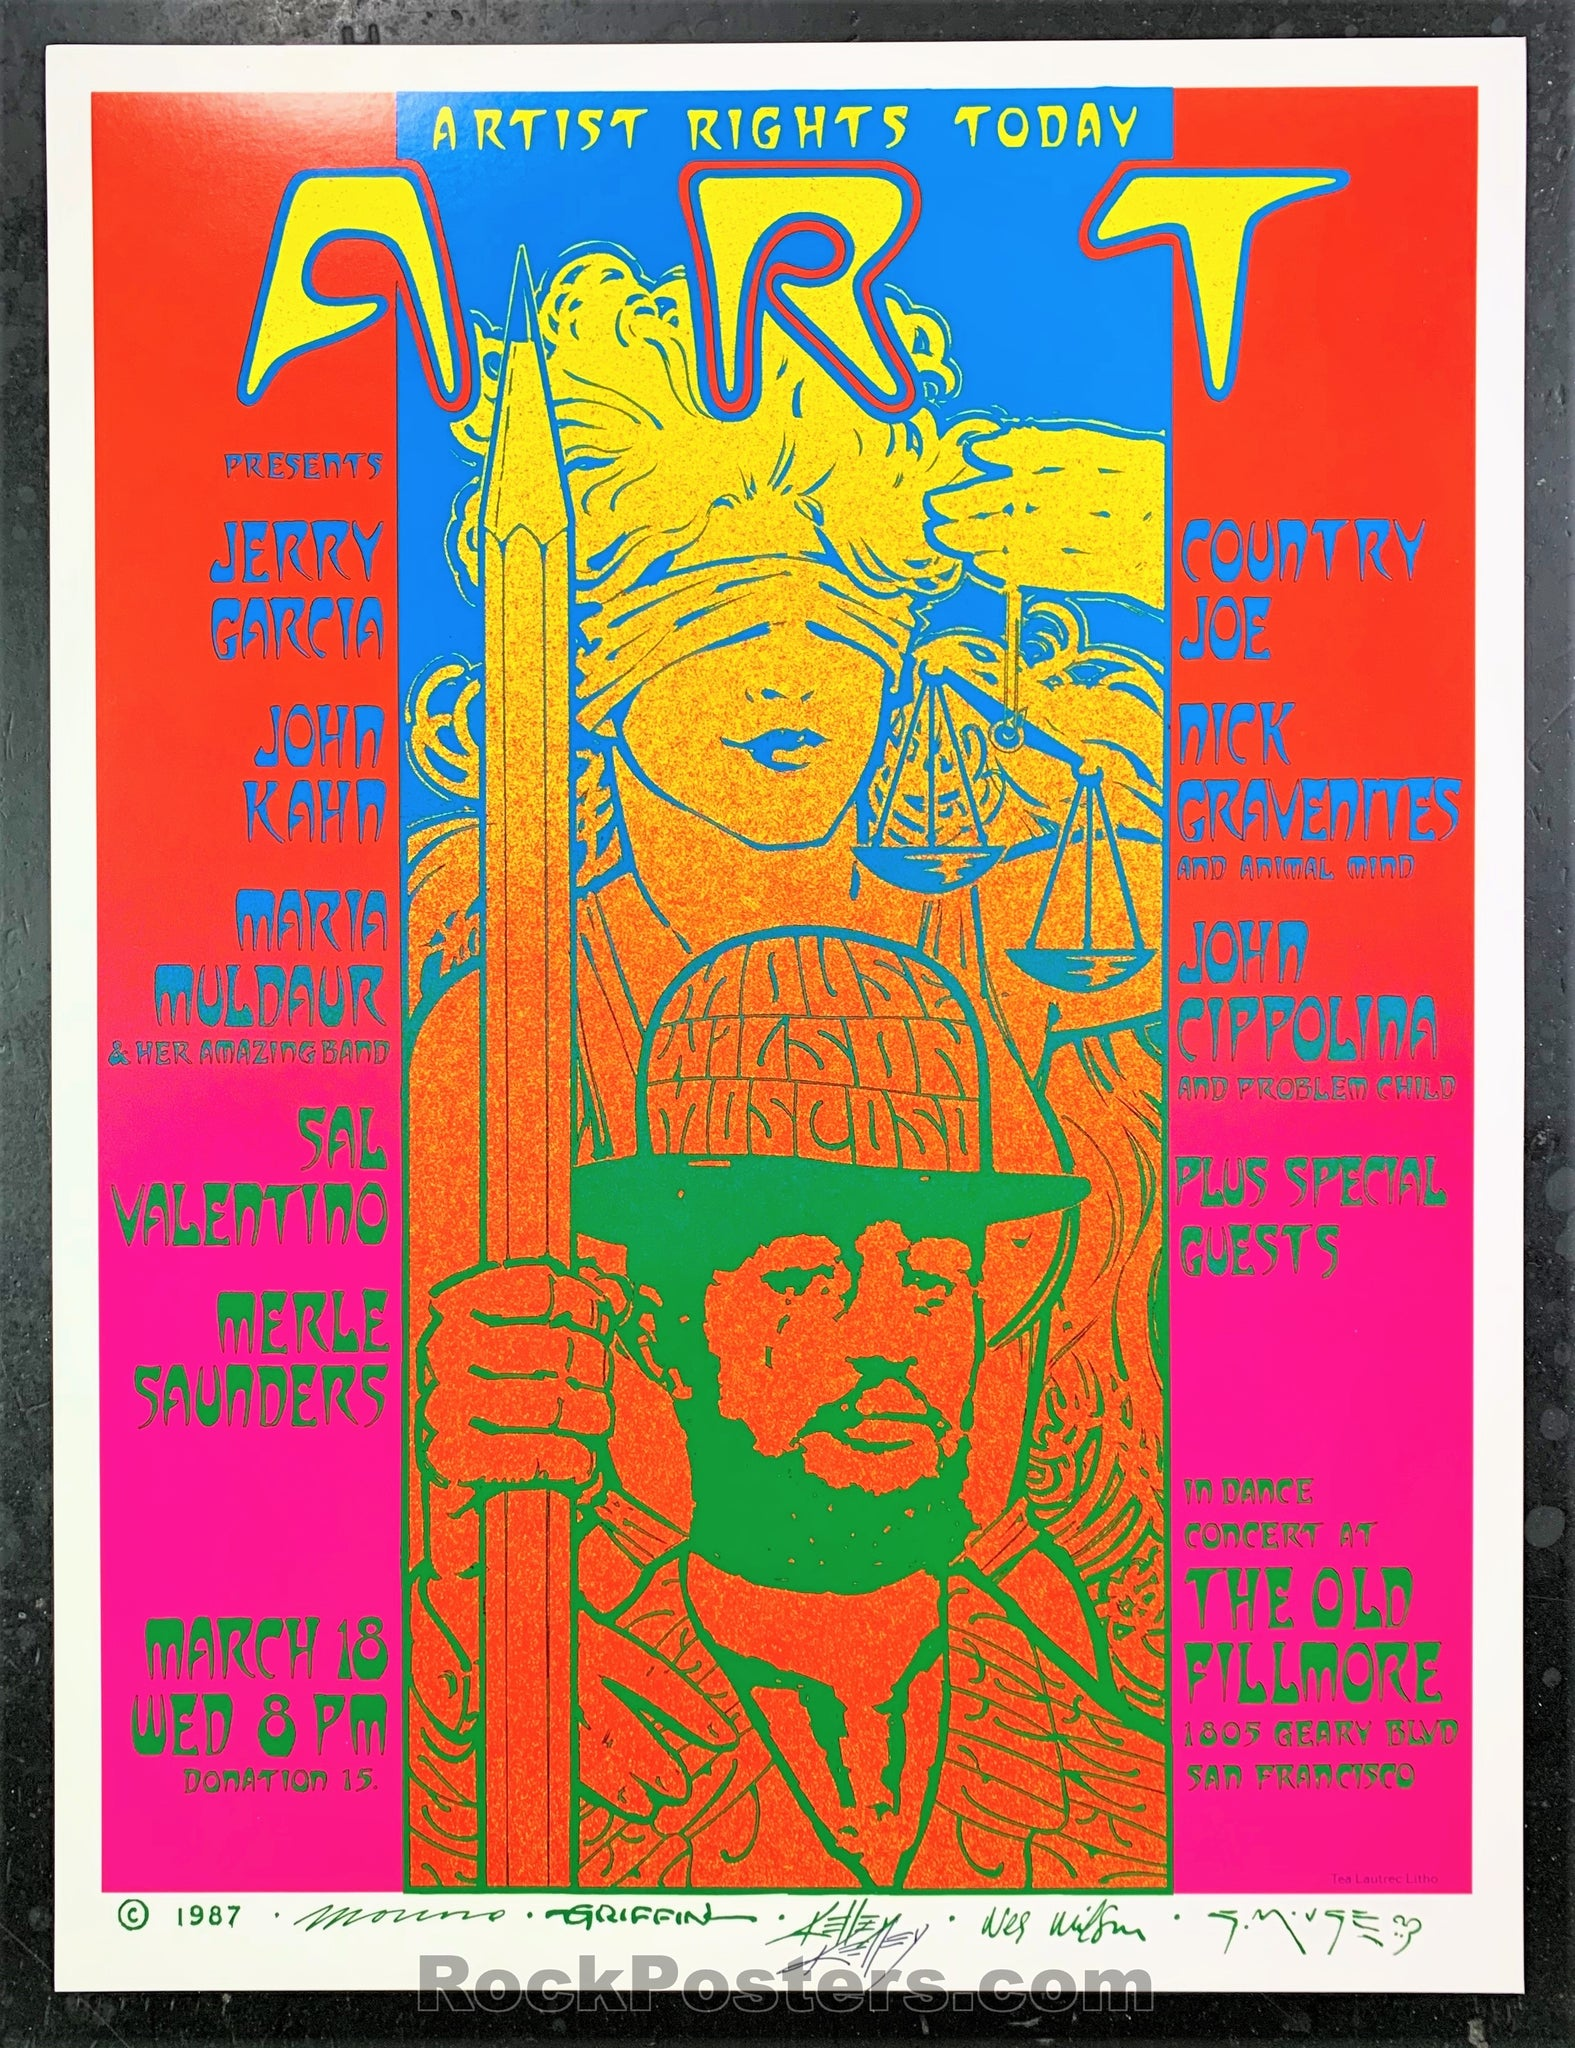 AUCTION - Alton Kelley Collection - Artist Right's Today Jerry Garcia 1987 Poster - Kelley Signed - Old Fillmore - Condition - Near Mint